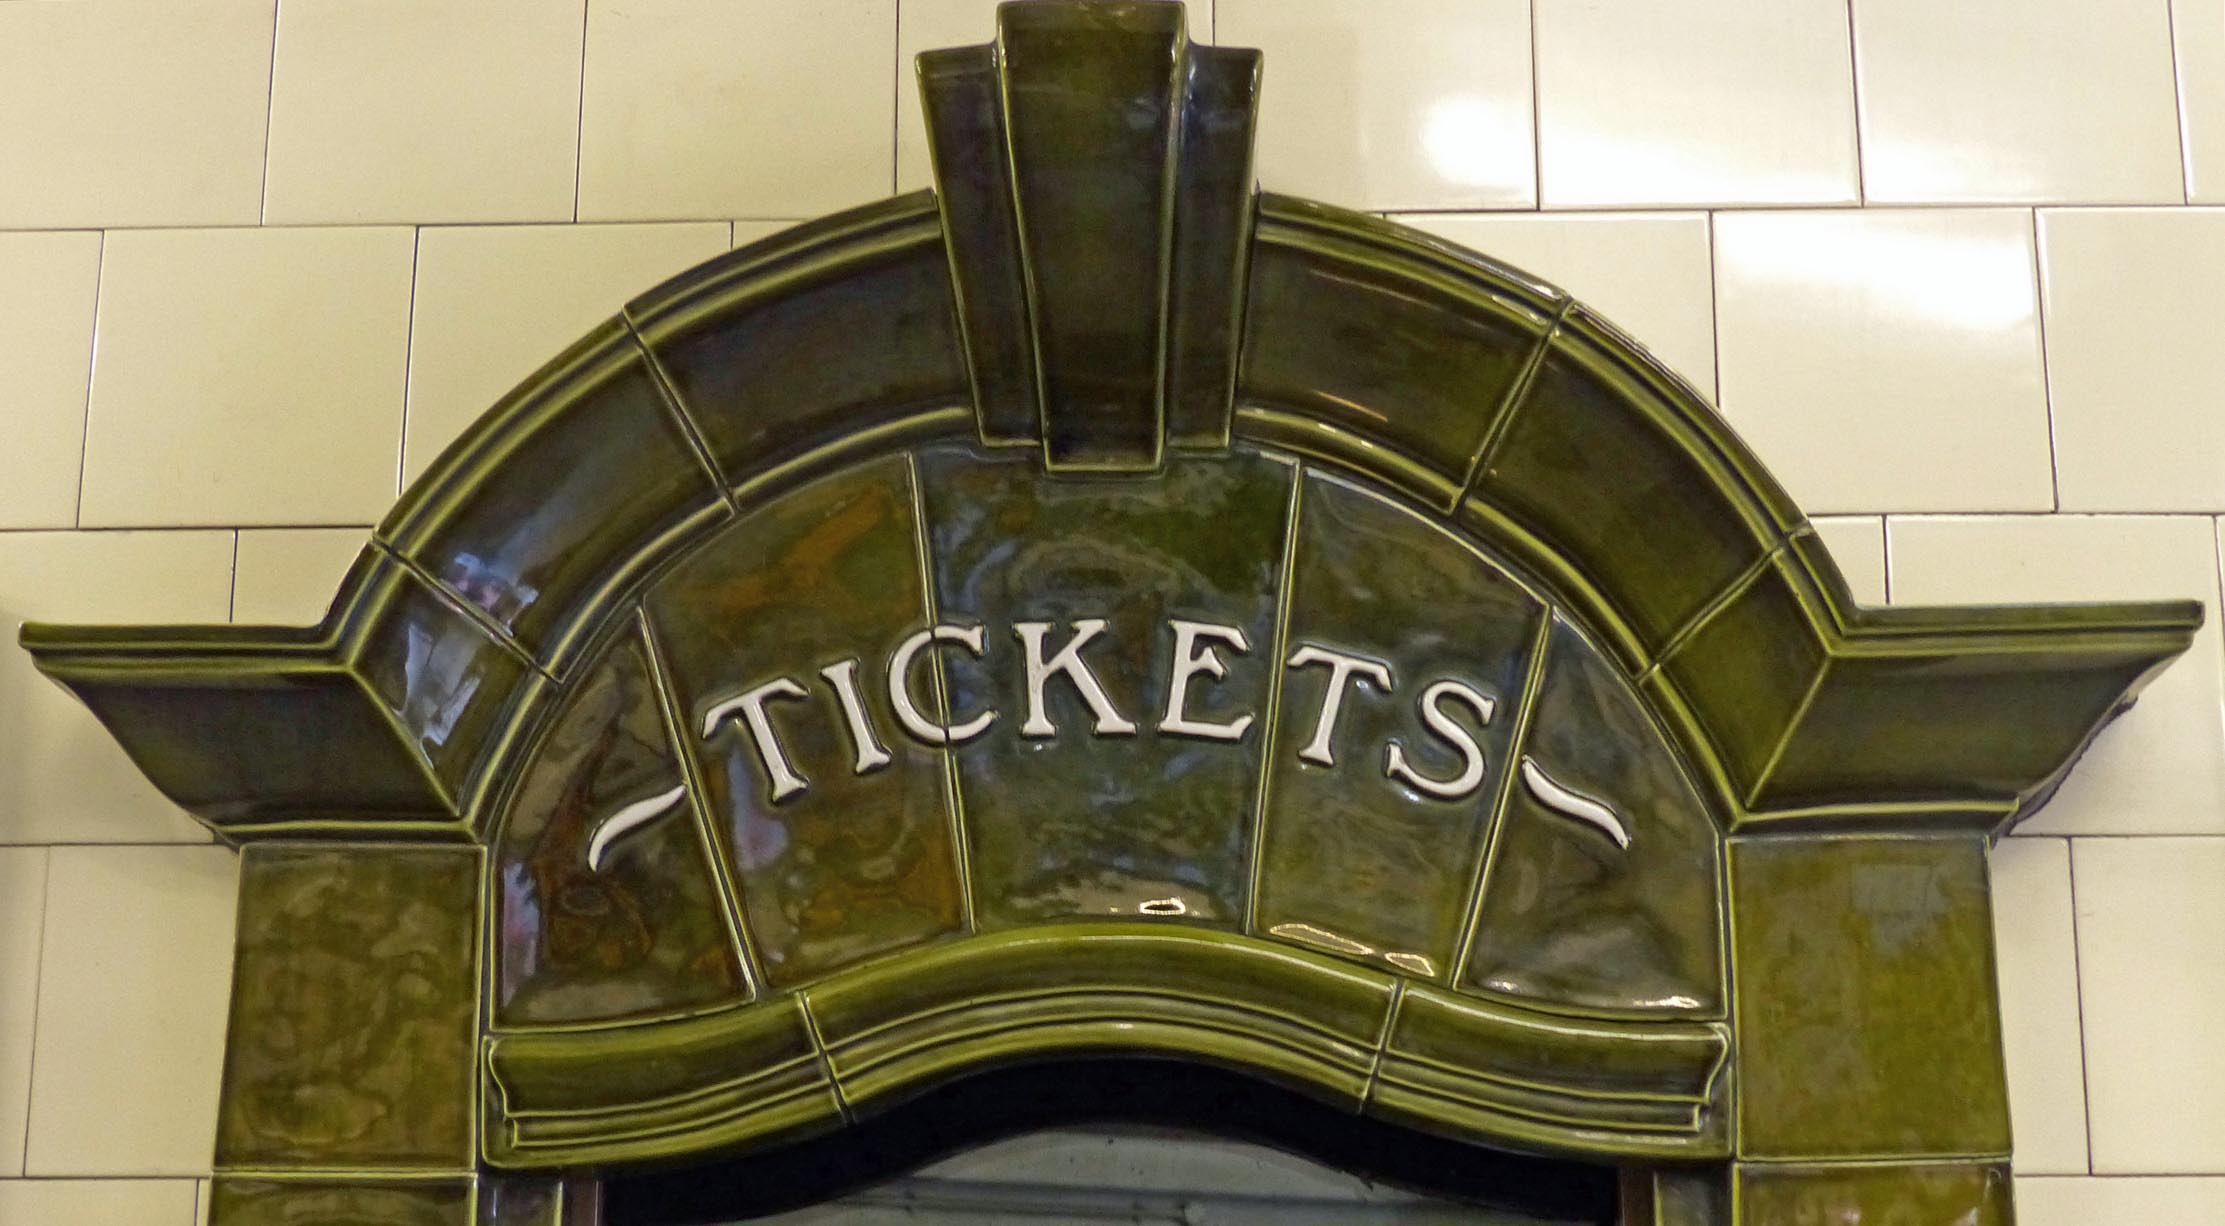 Green tiles with tickets sign